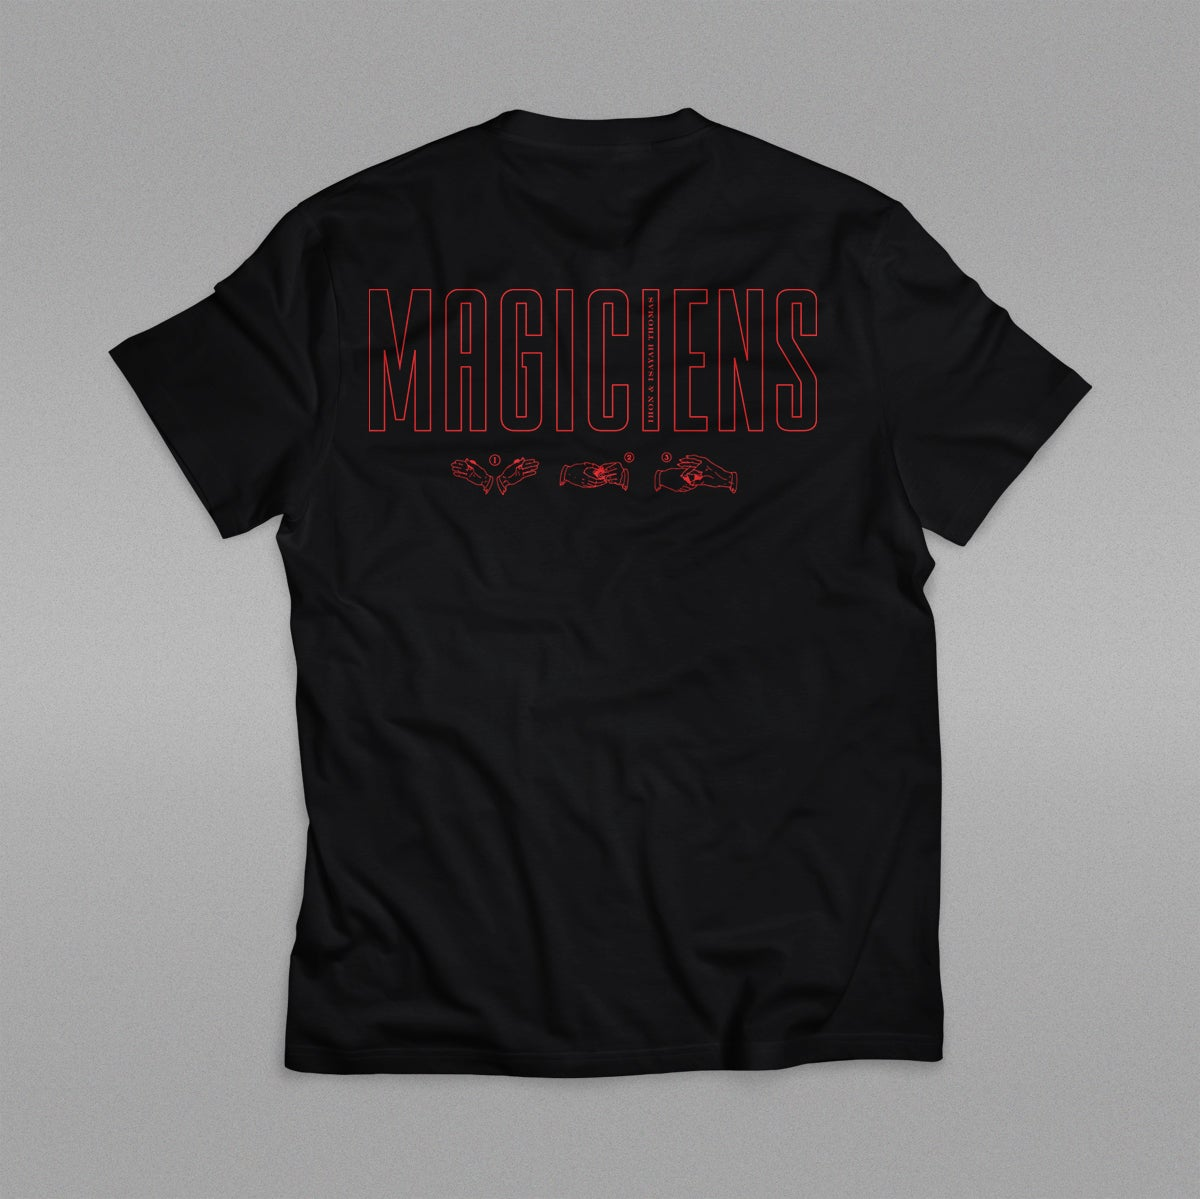 MAGICIENS T-SHIRT EXCLUSIVE by KAIKOO